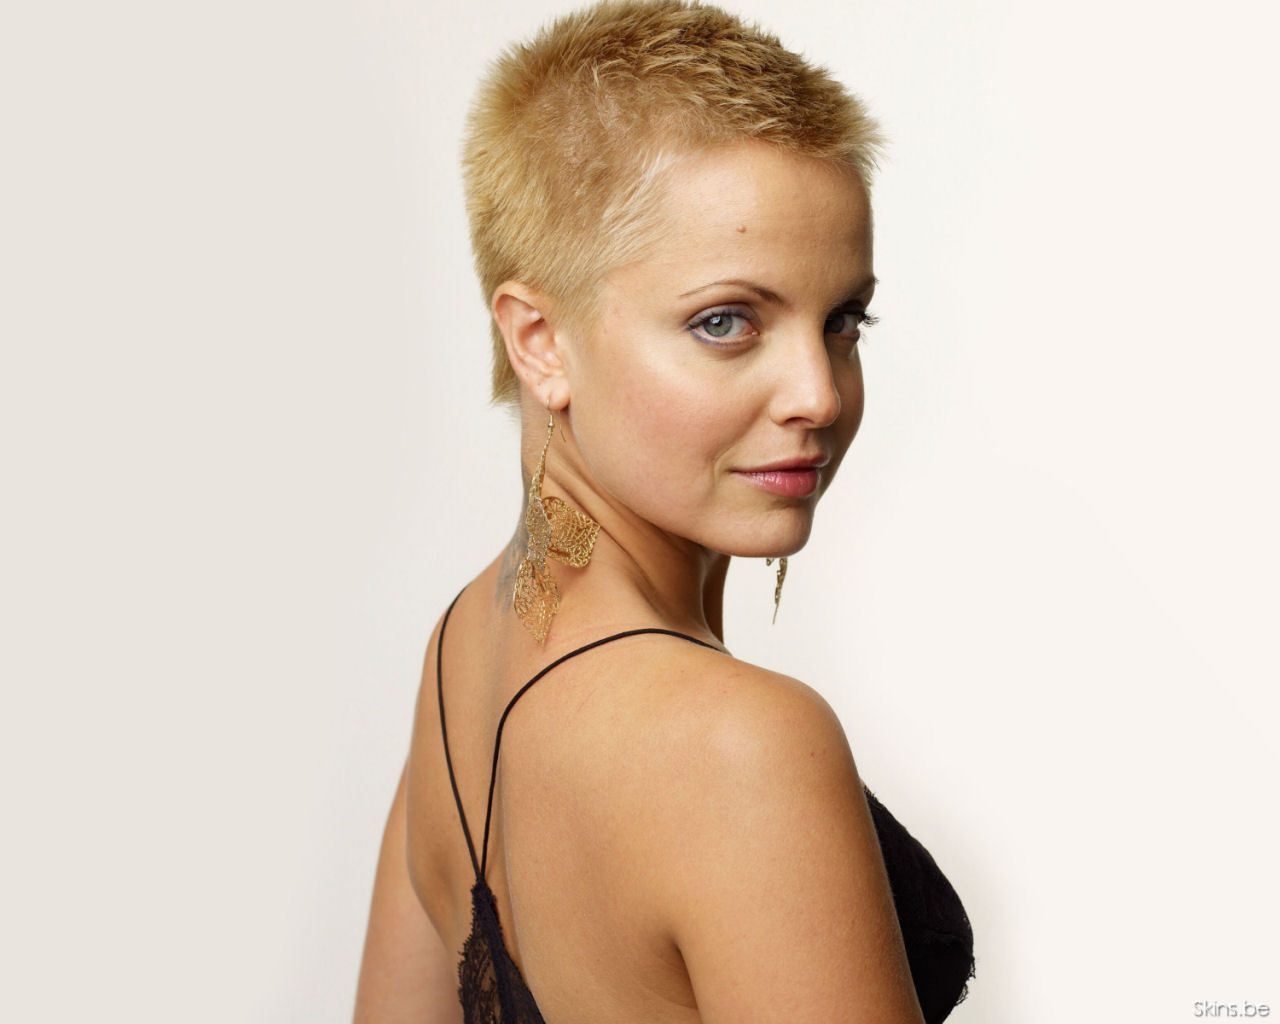 Mena Suvari 035 Mena Suvari 0009 AMERICAN BEAUTY: Mena Suvari Tattoos And Freshly SINGLE